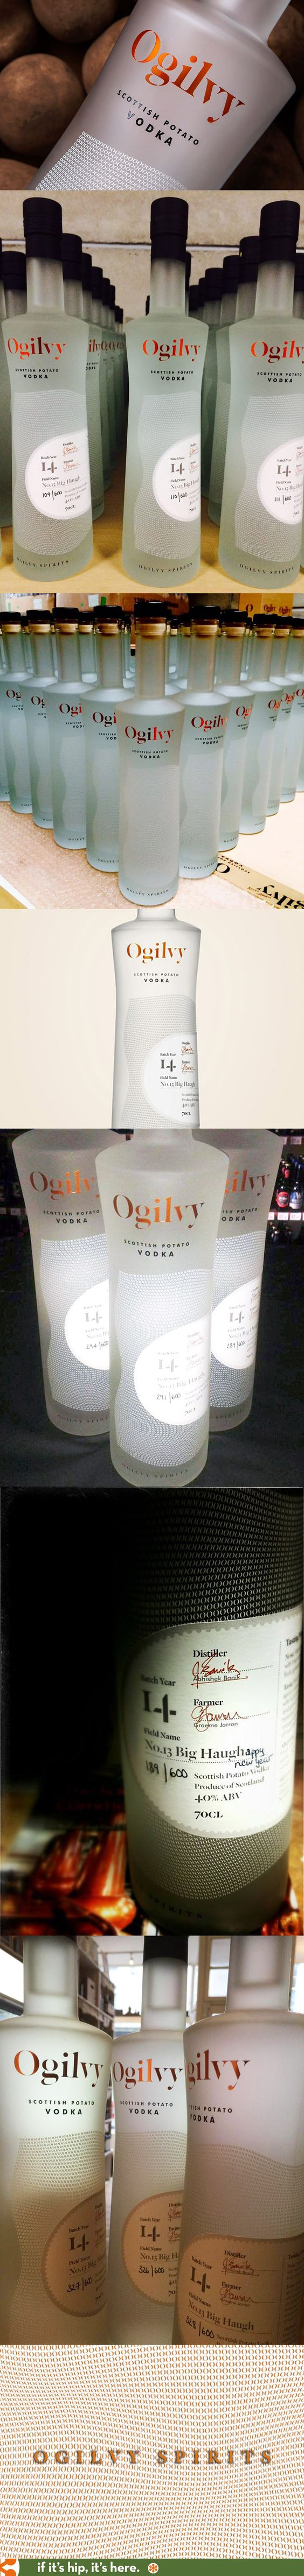 Ogilvy Scottish Potato Vodka wins a gold medal for packaging at the 2015 SF Spirits Competition.